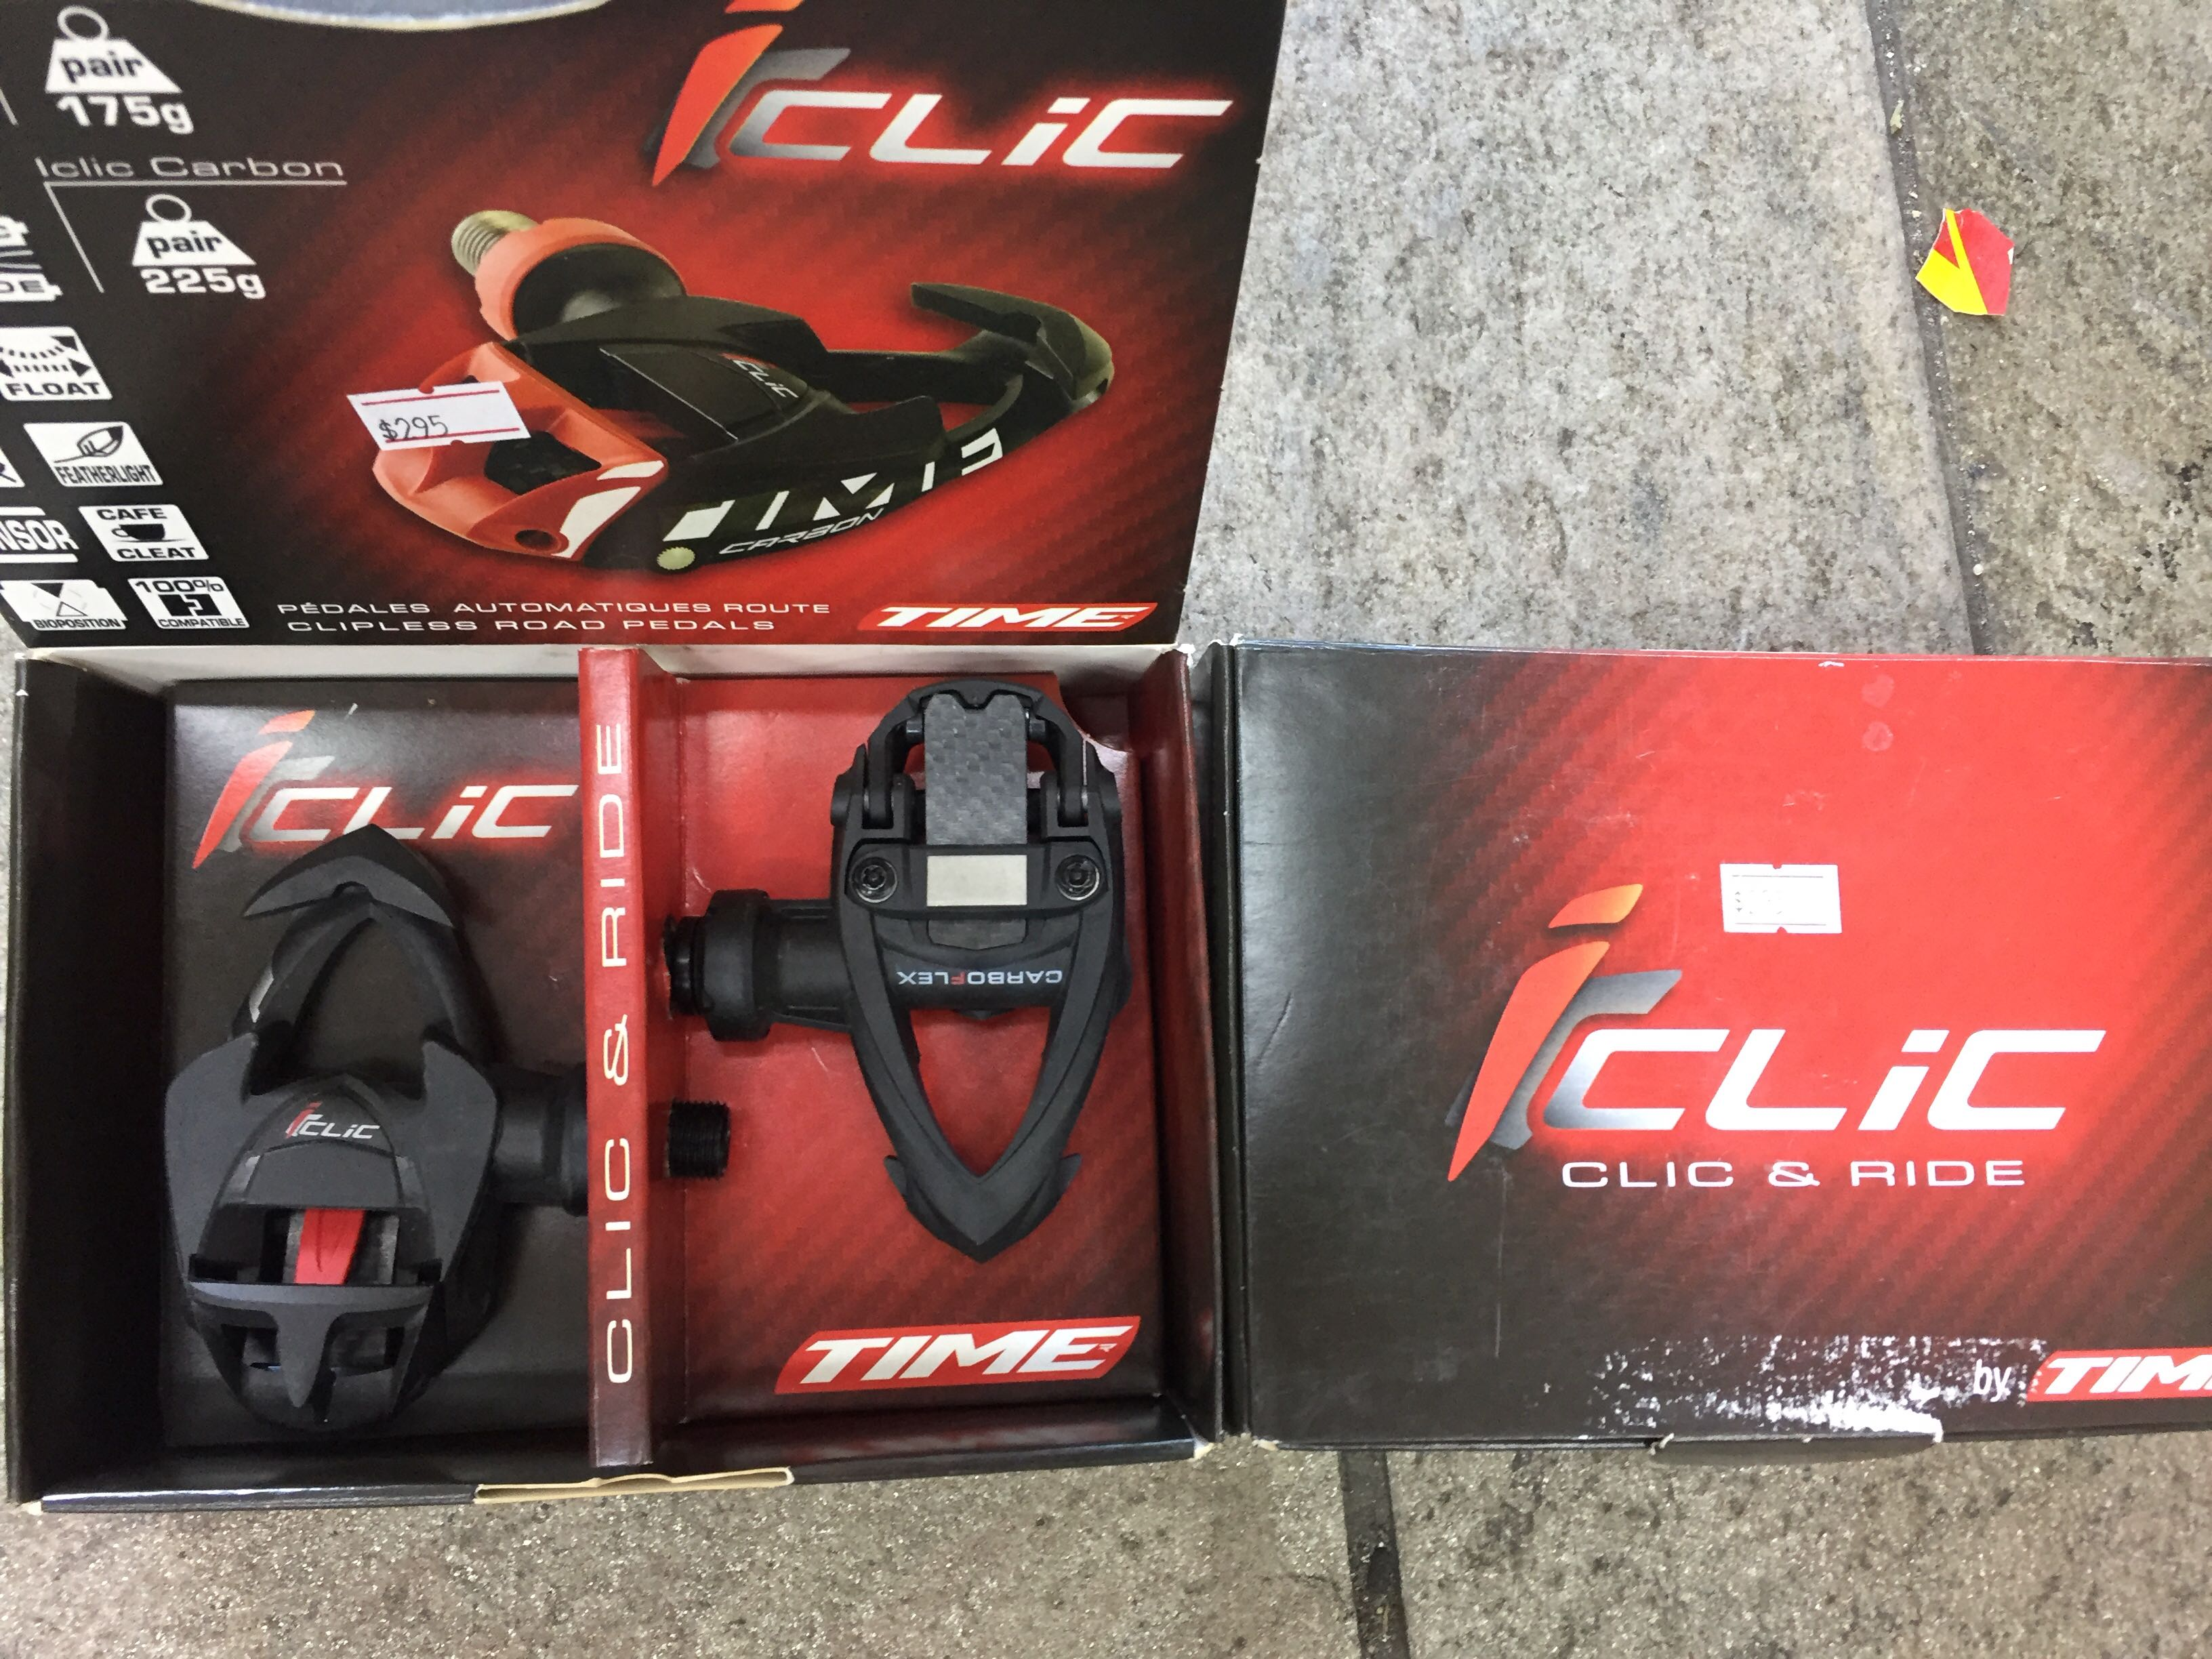 49c13bf665f2 TIME ICLIC ROAD PEDAL, Bicycles & PMDs, Bicycles, Road Bikes on ...